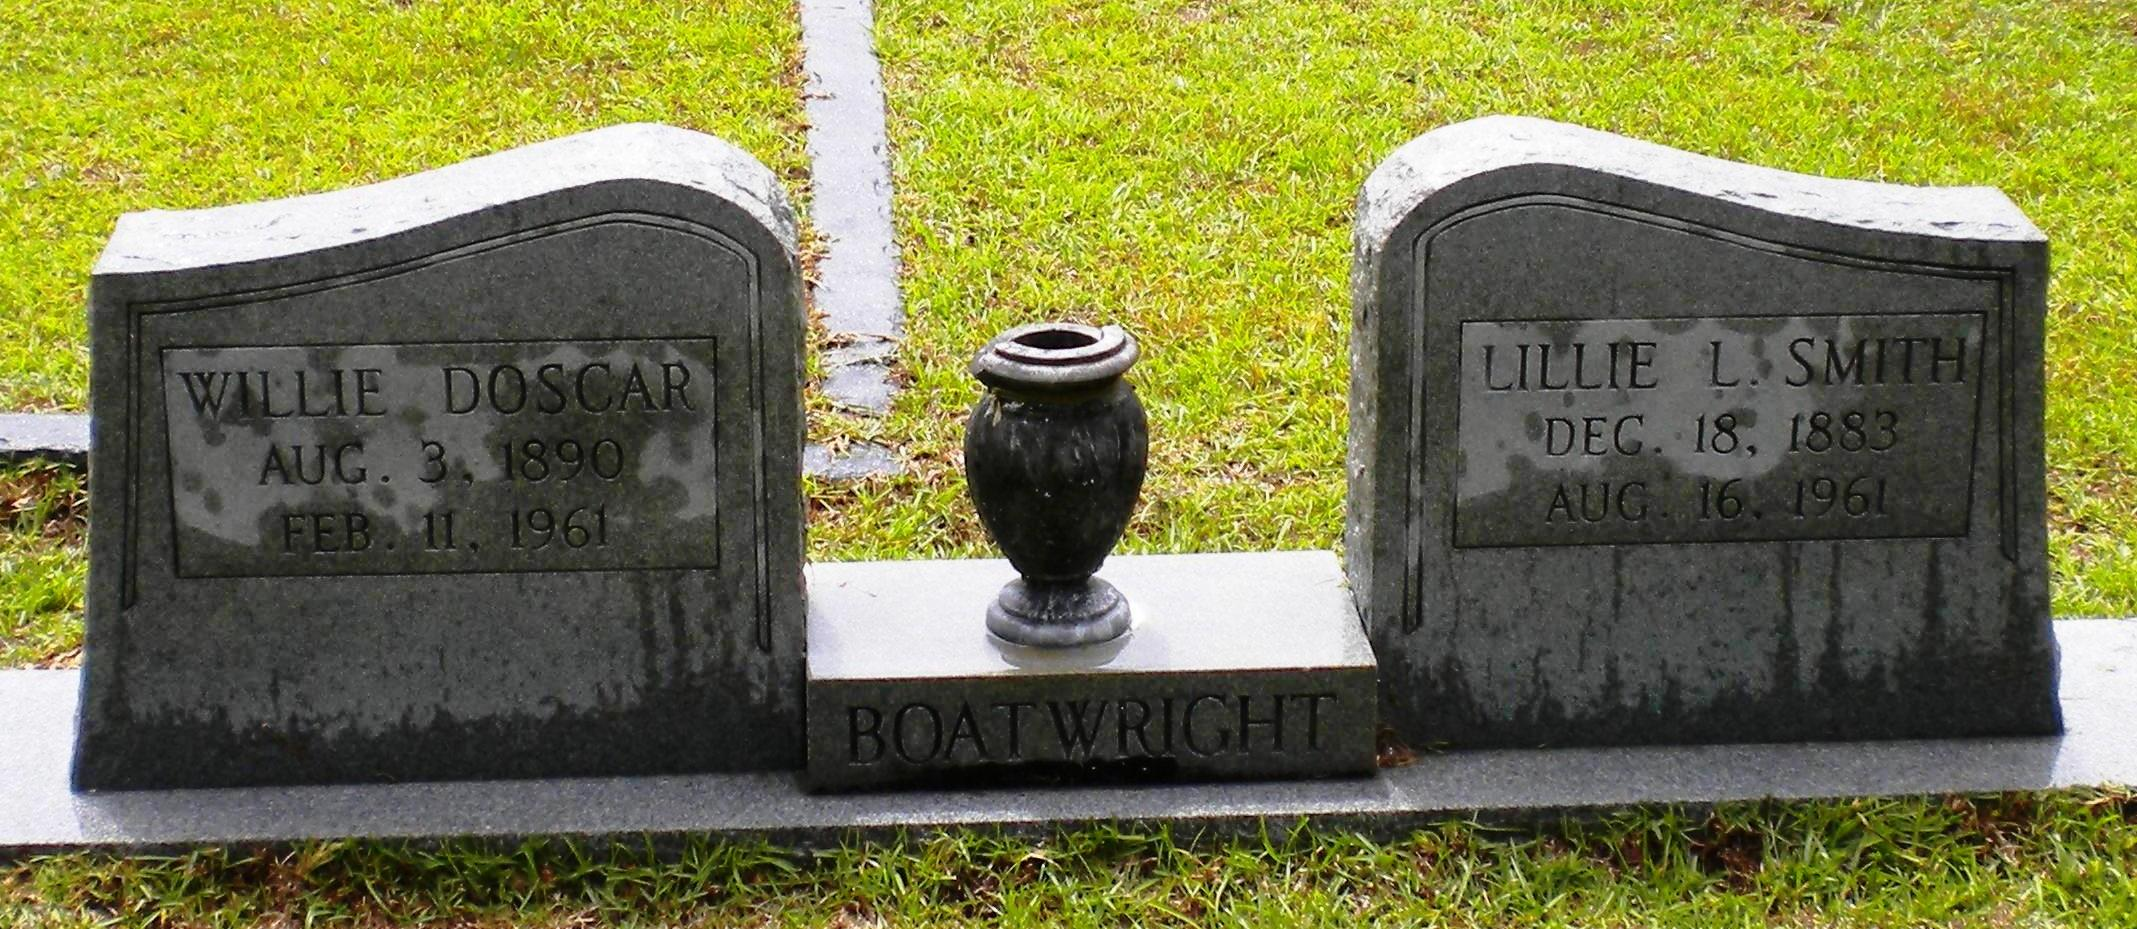 Willie Doscar and Lillie L. Smith Boatwright Gravestone